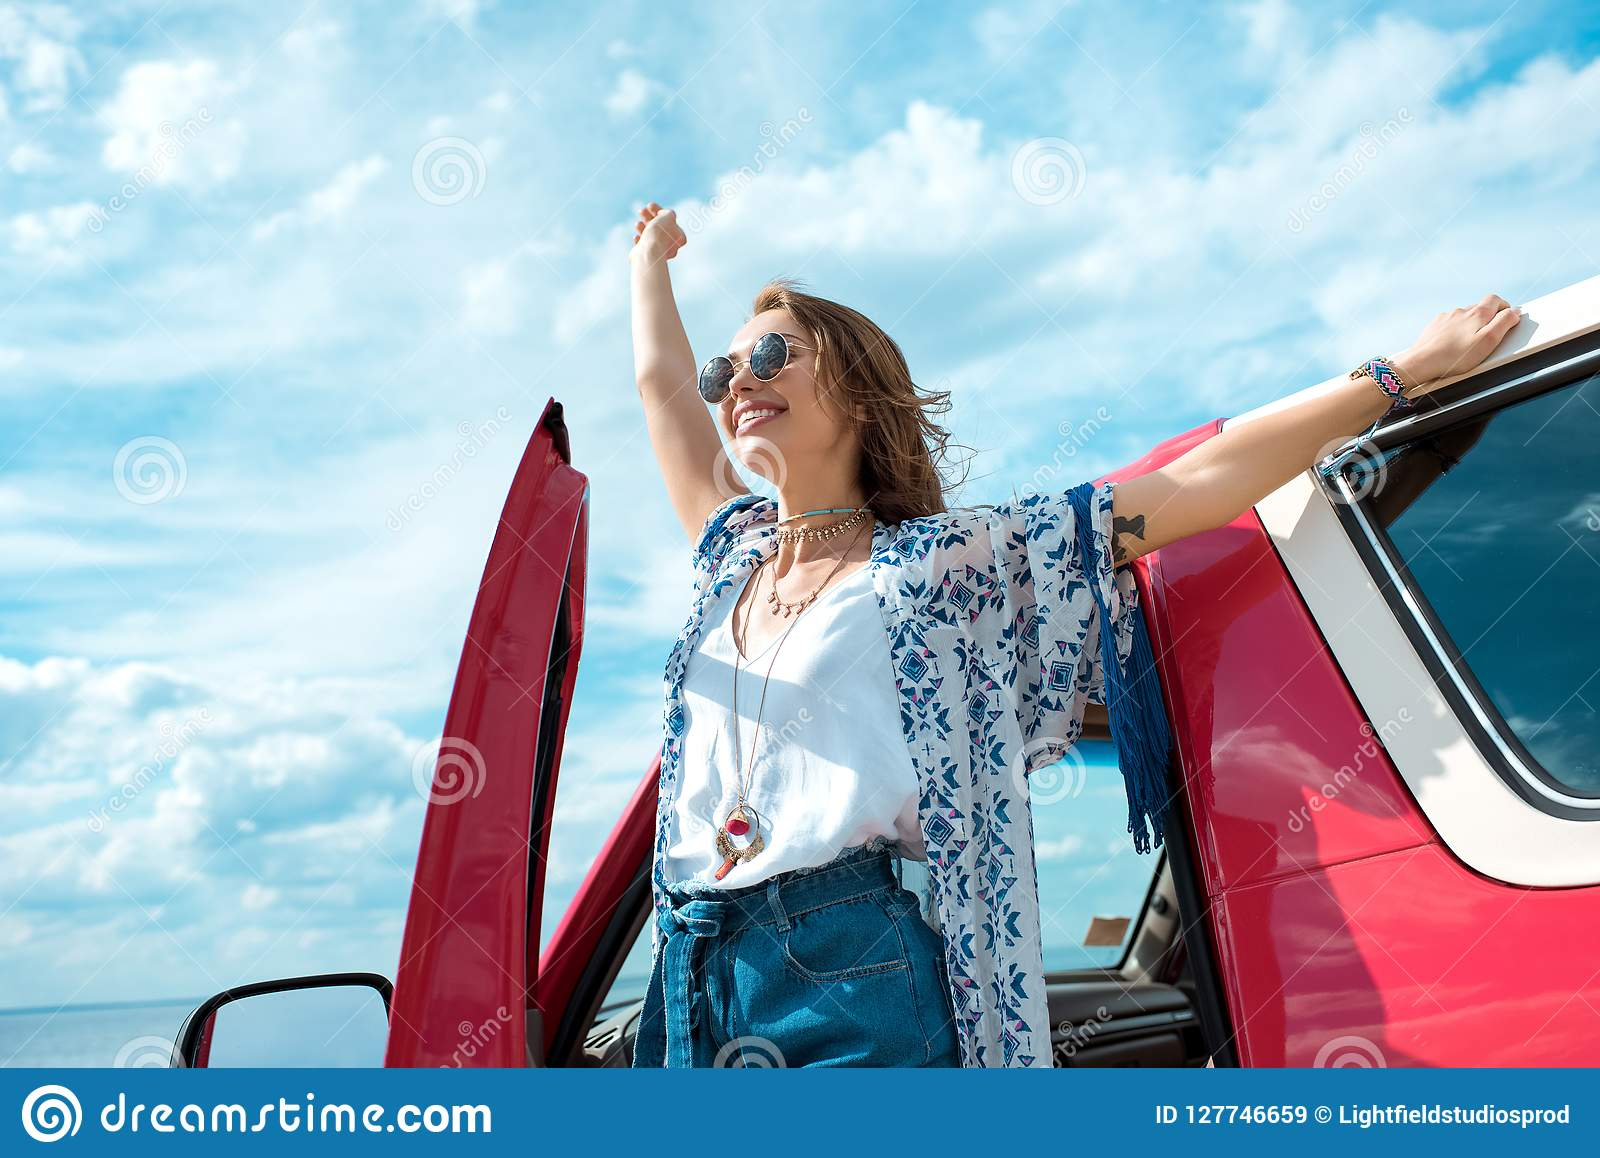 excited young woman in sunglasses standing near car